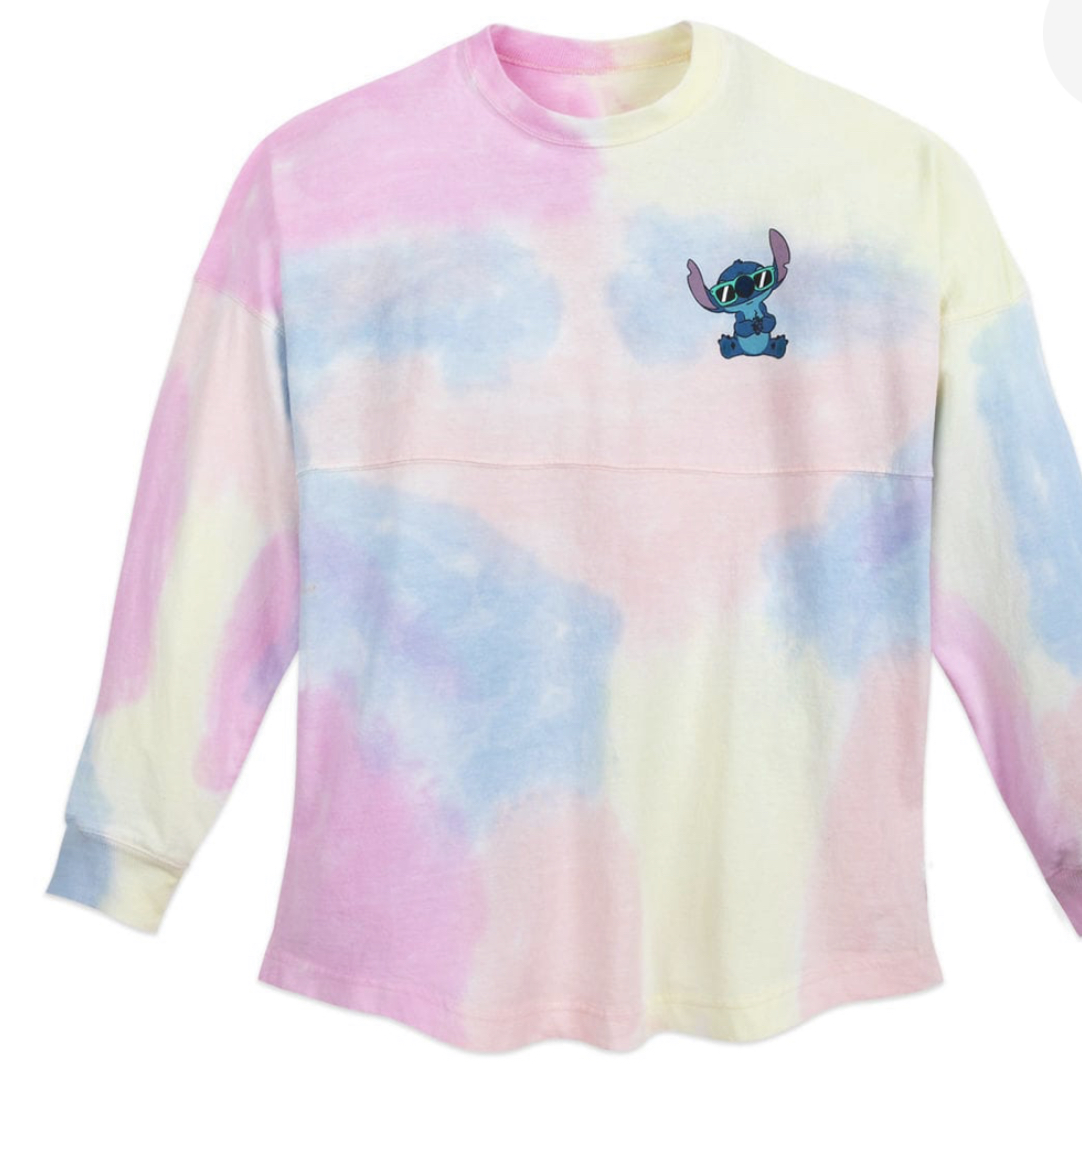 'Ohana Means Family' Stitch Spirit Jersey available now 2